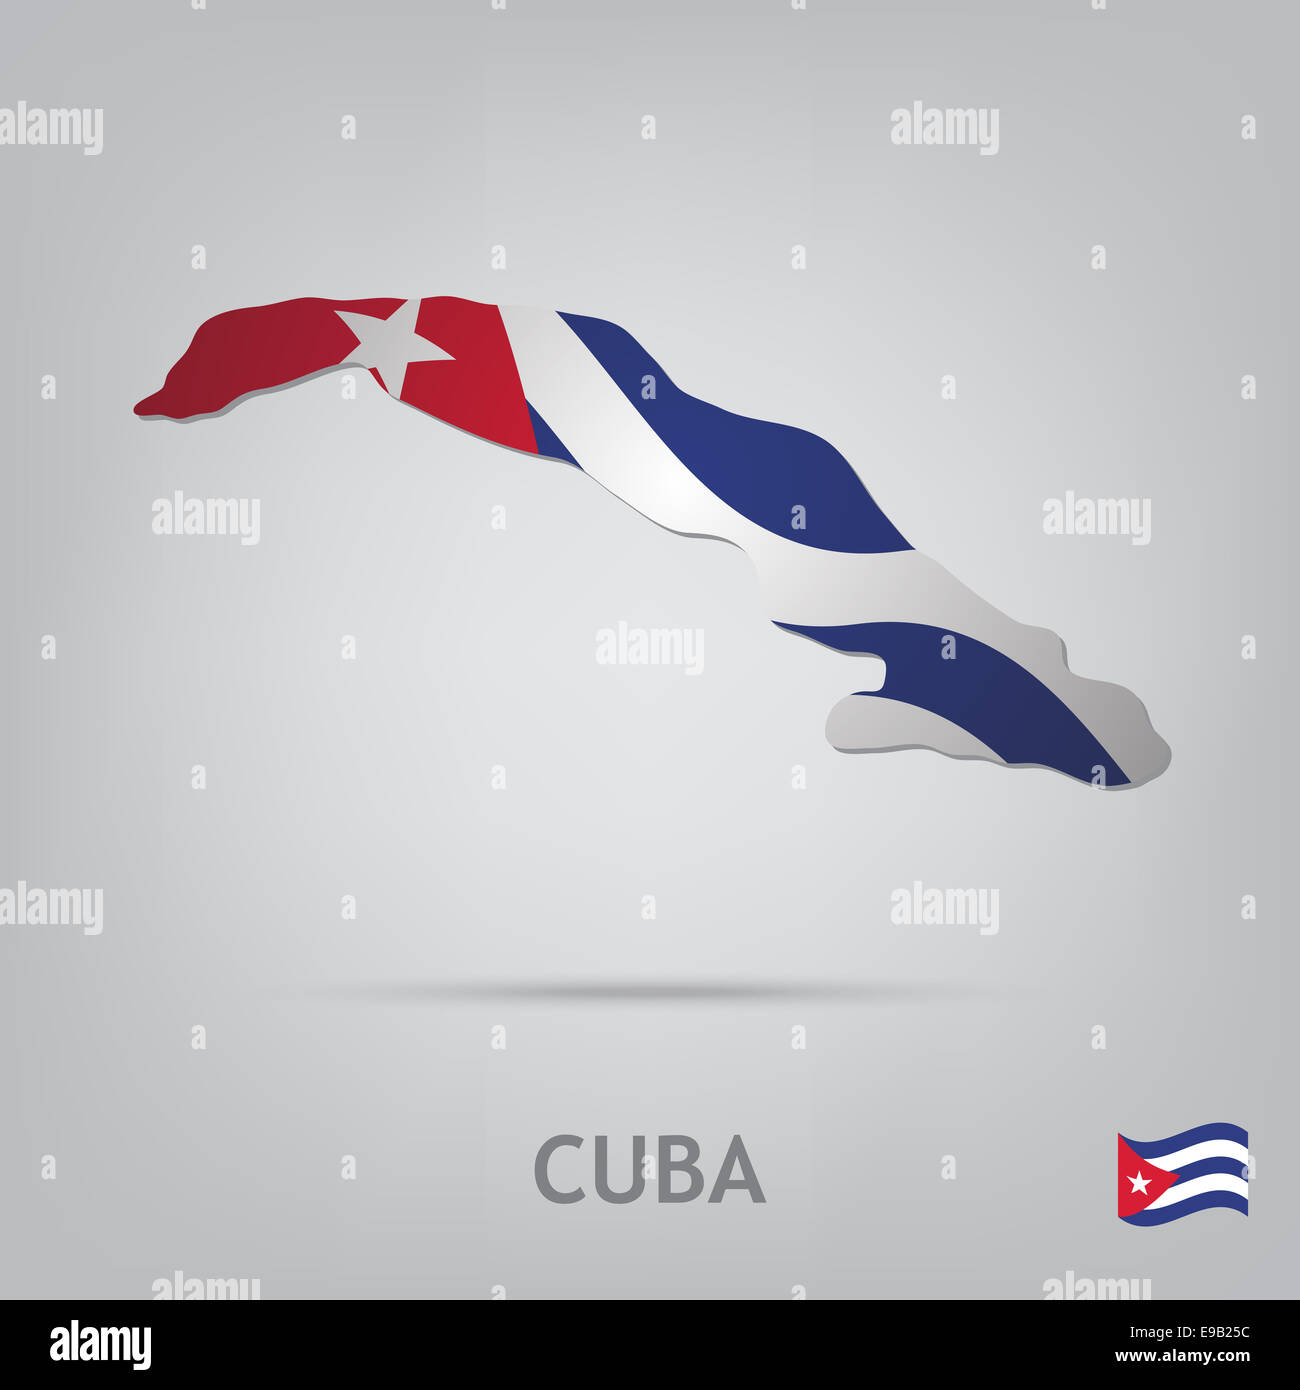 country cuba - Stock Image